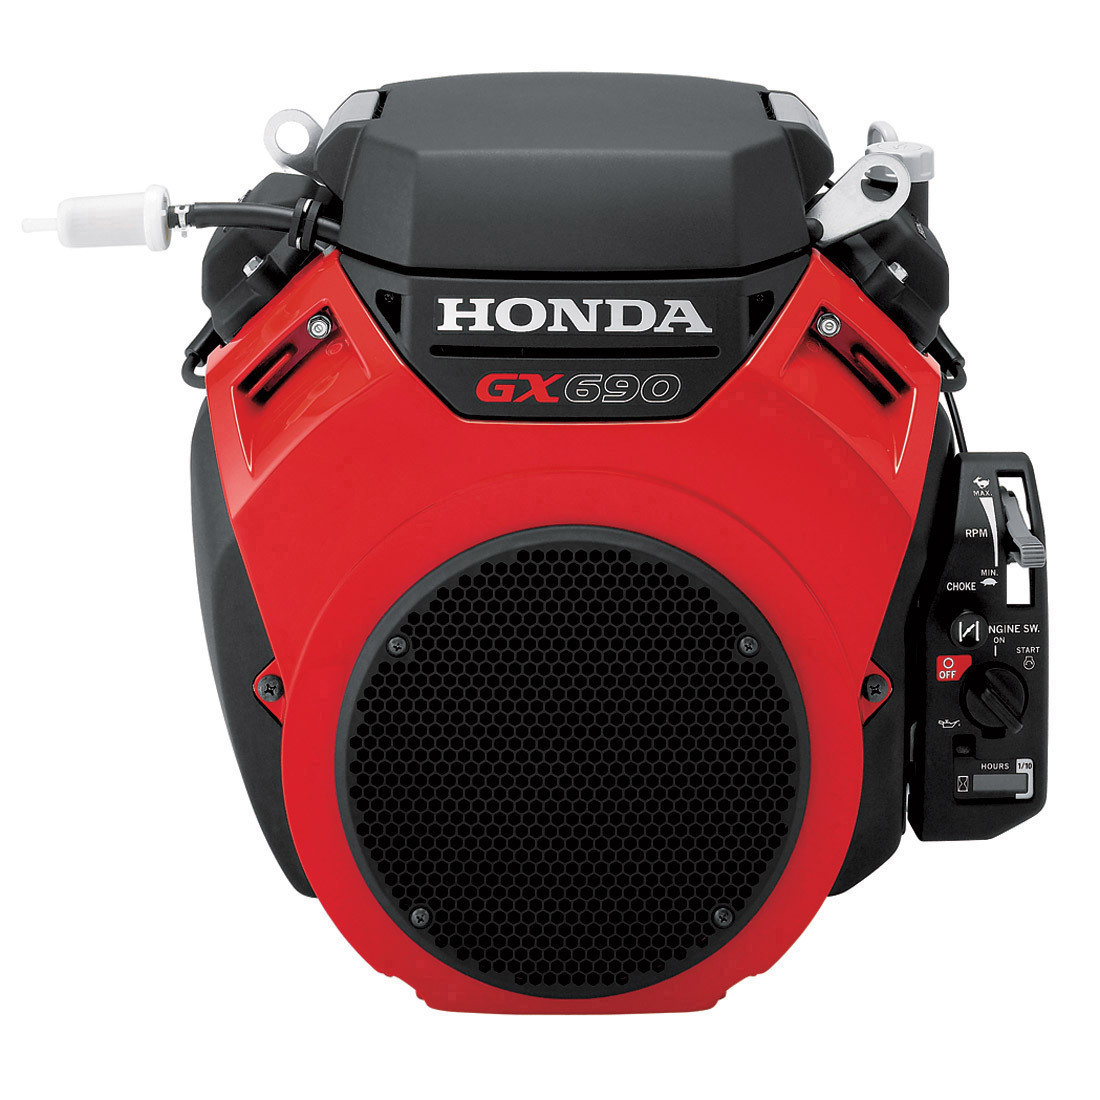 Honda V-Twin engines offer higher horsepower, improved adaptability, quiet operation, and greater fuel efficiency, not to mention a 3 year warranty.